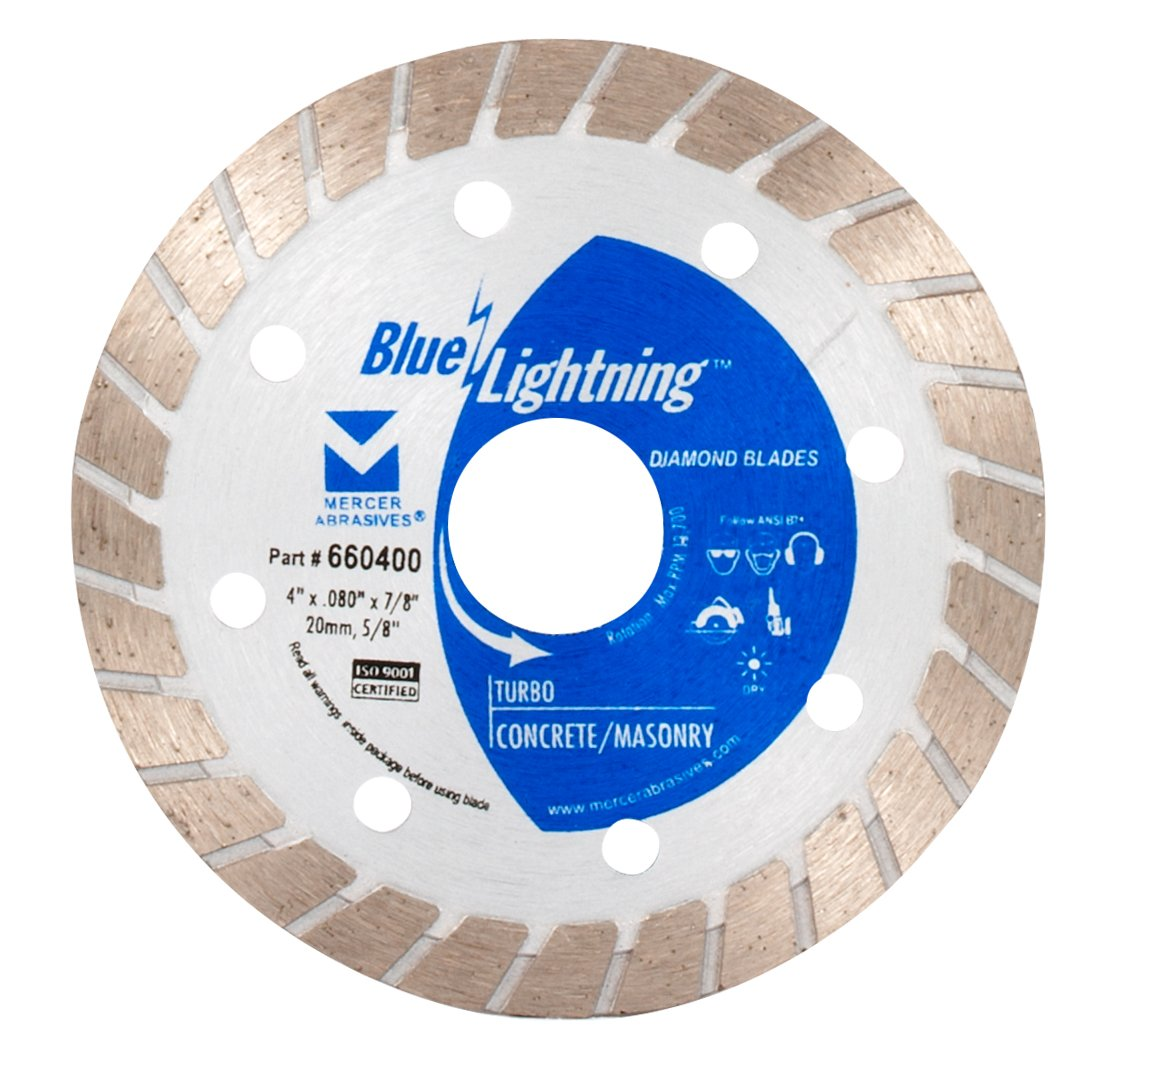 Disco De Diamante Mercer Turbo Blue Lightning 660400 4 Pulg.